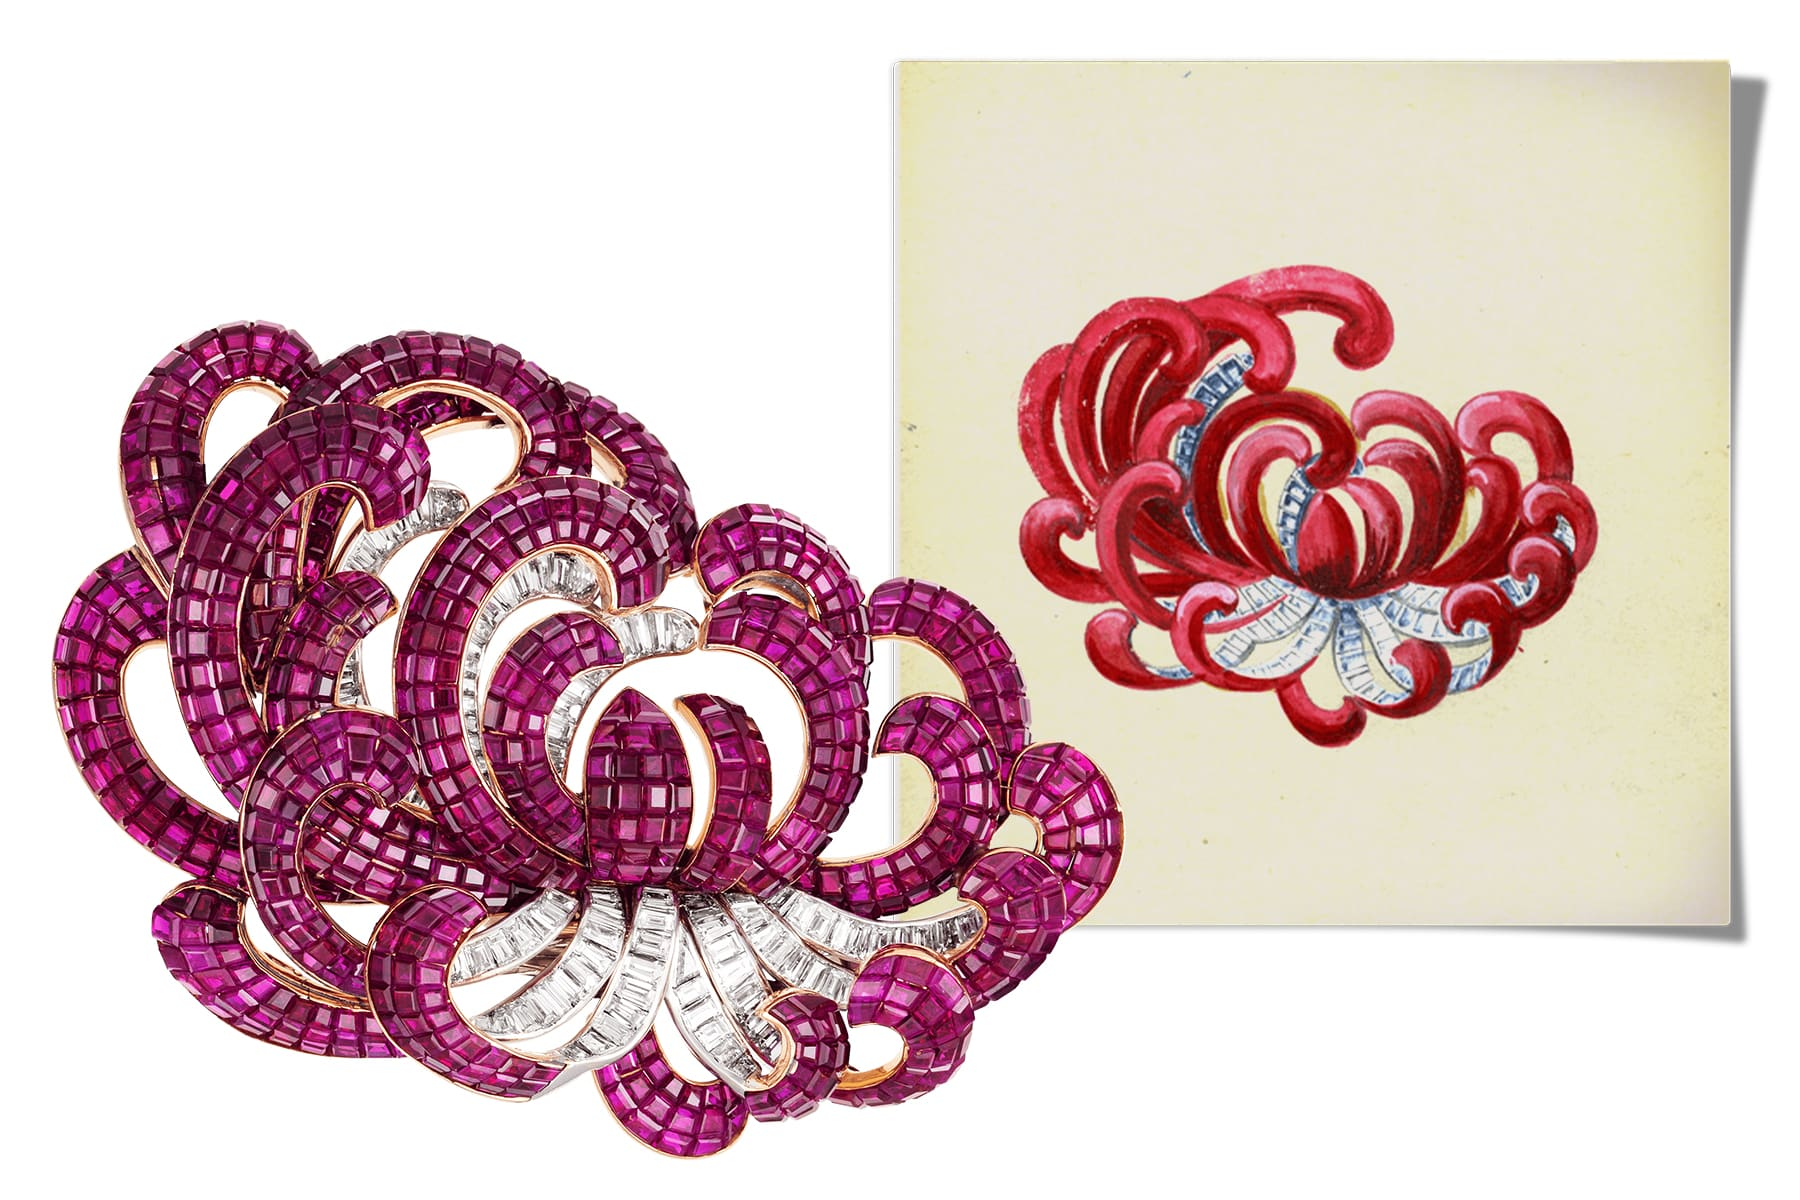 This Van Cleef & Arpels Mystery Set chrysanthemum brooch, shown with a sketch for its design, was made by the house in 1937.